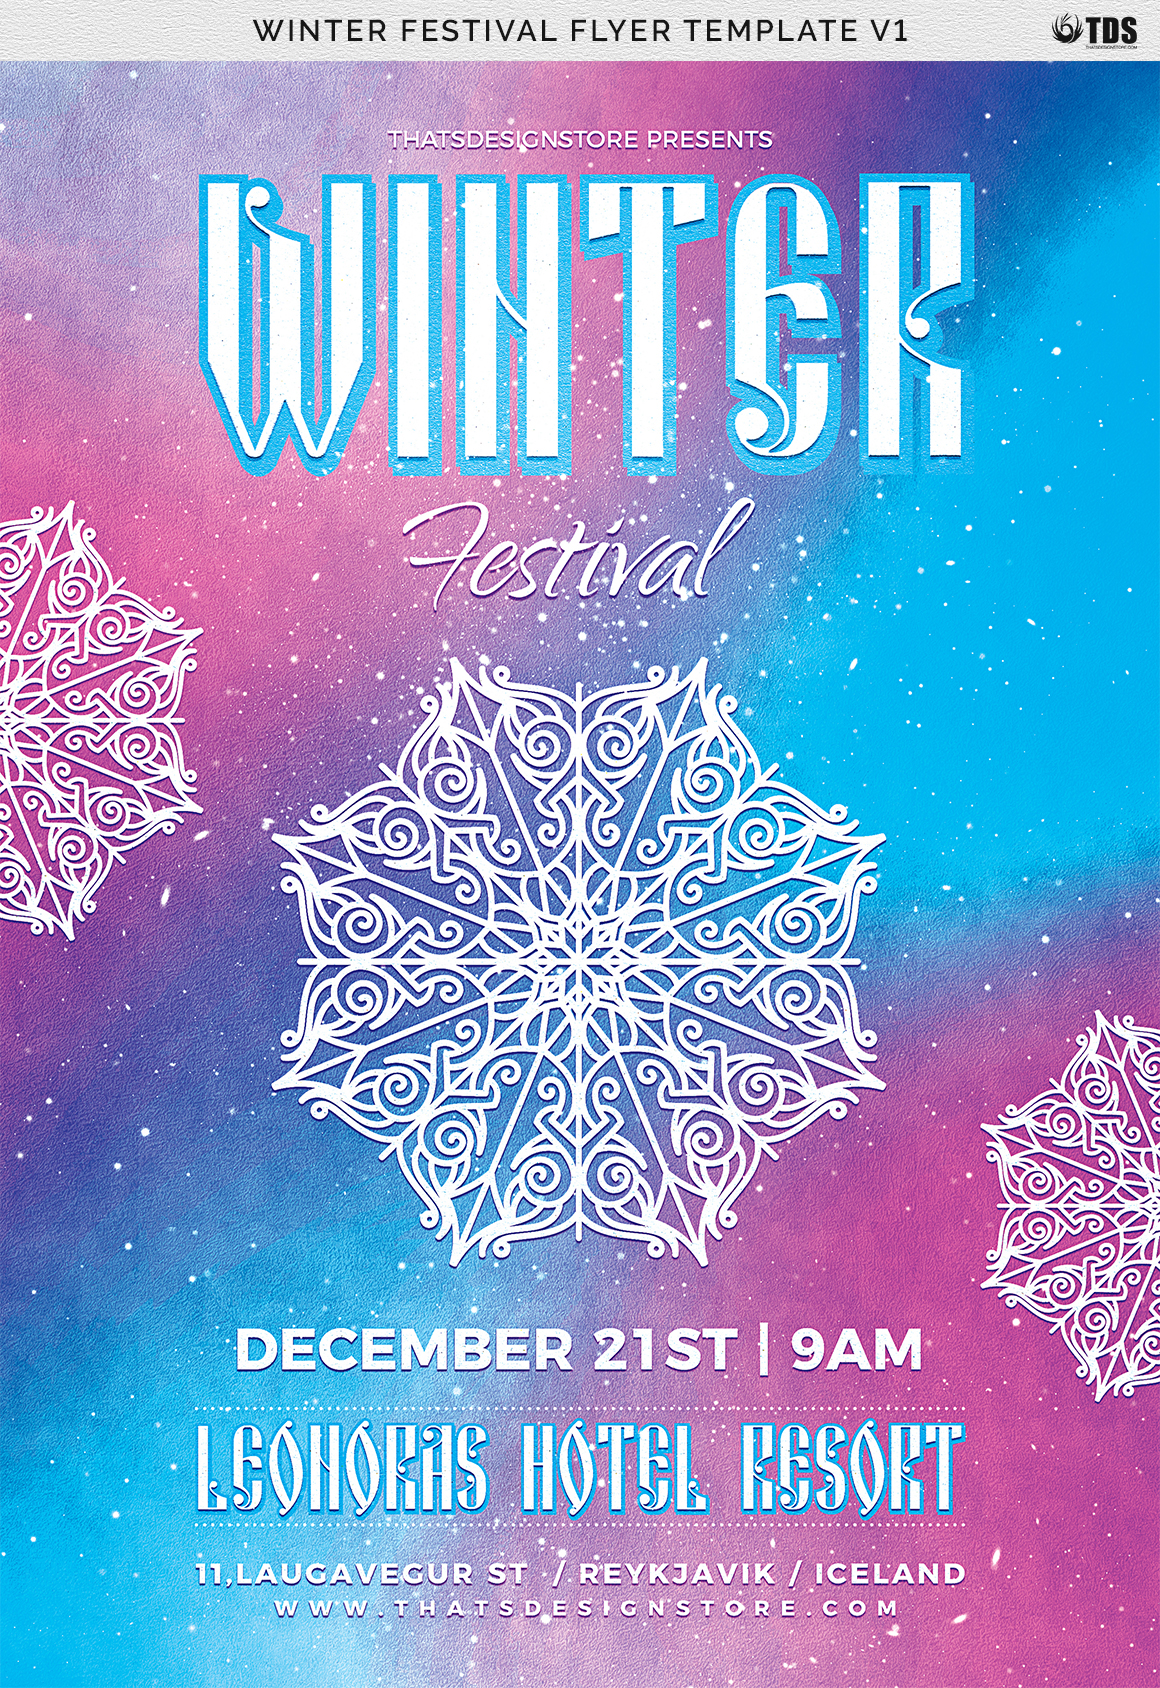 Winter Festival Flyer Template V1 example image 7